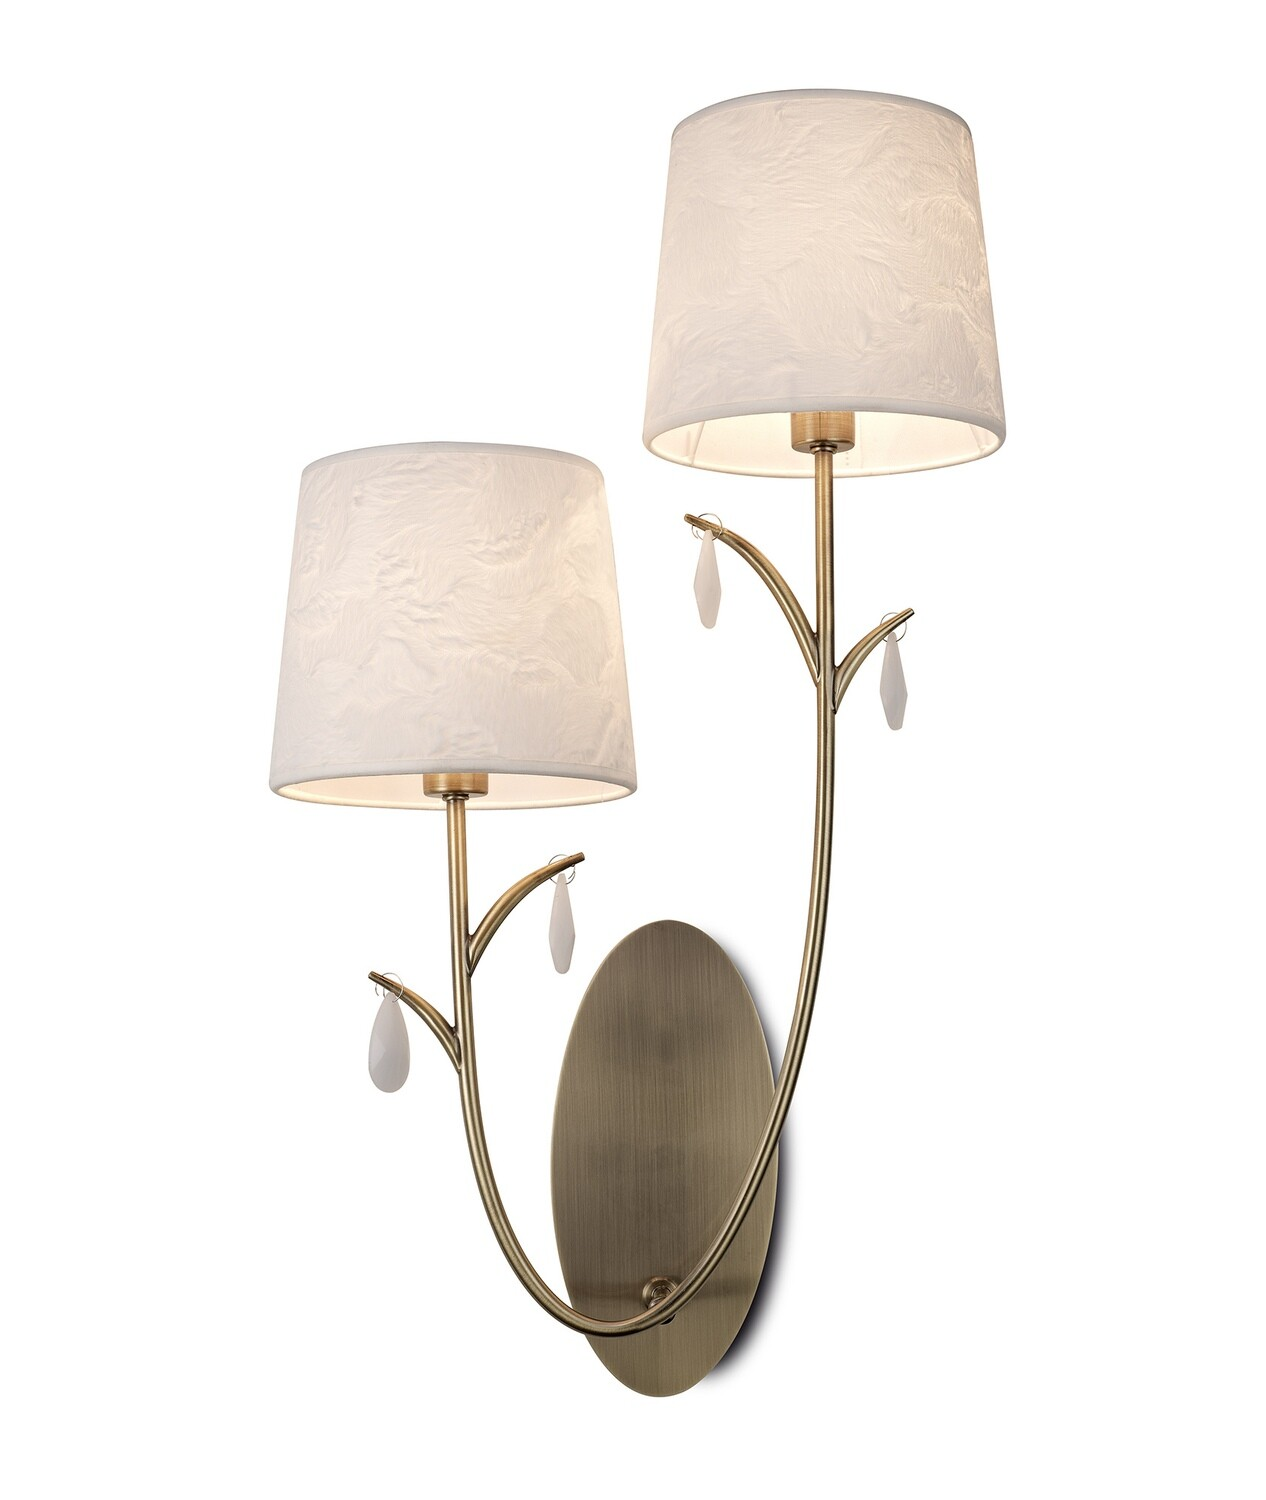 Andrea Wall Light, 2 x E14, Antique Brass, White Shades, White Crystal Droplets